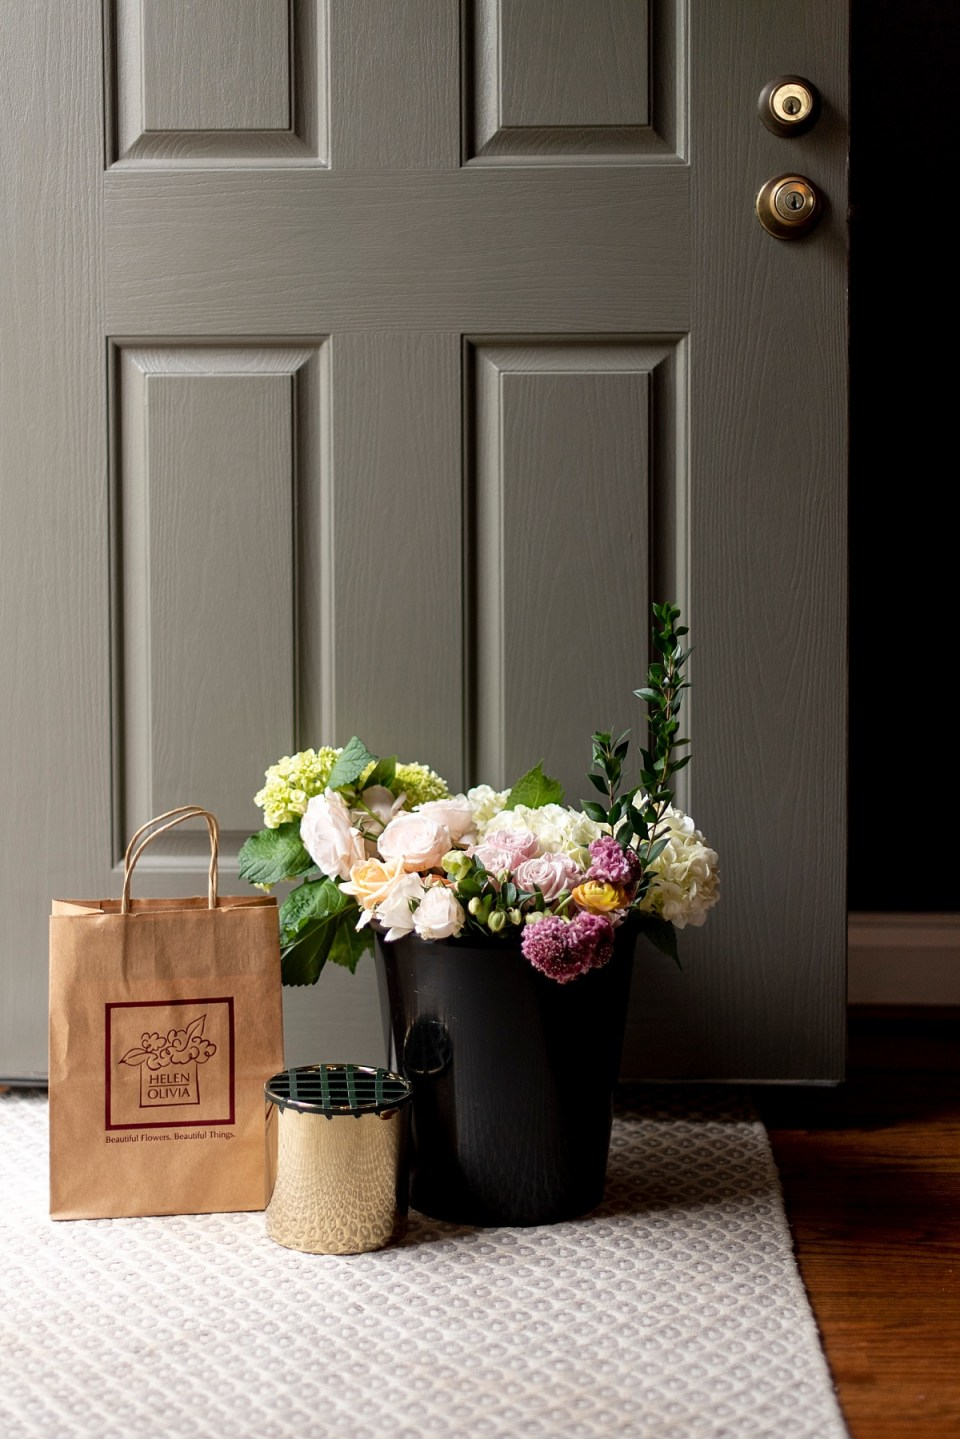 Creative things to do at home  - Flower Arranging Workshop with Helen Olivia Flowers